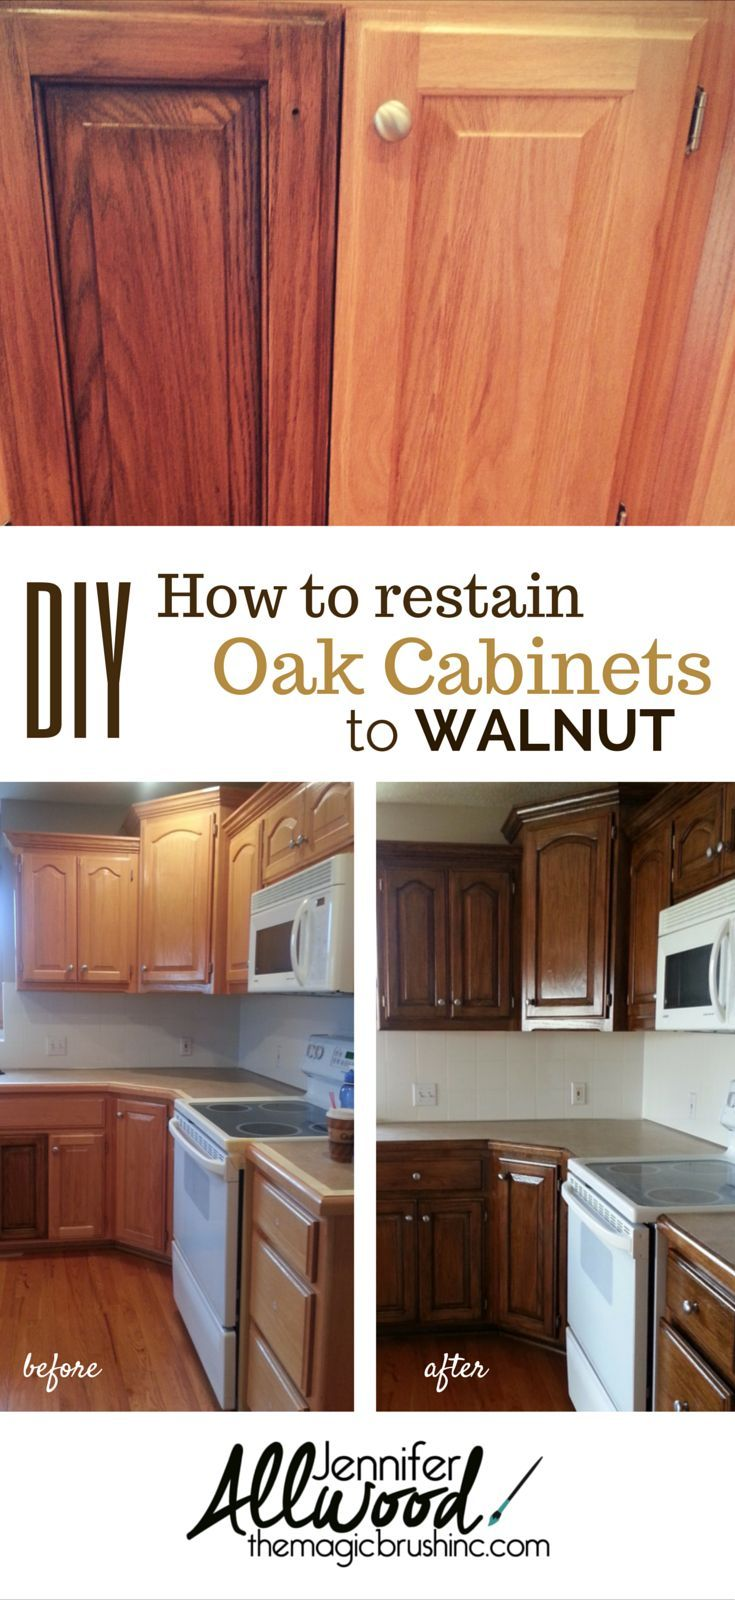 Cabinets and Furniture Finishes | Dark walnut stain, Walnut stain ...